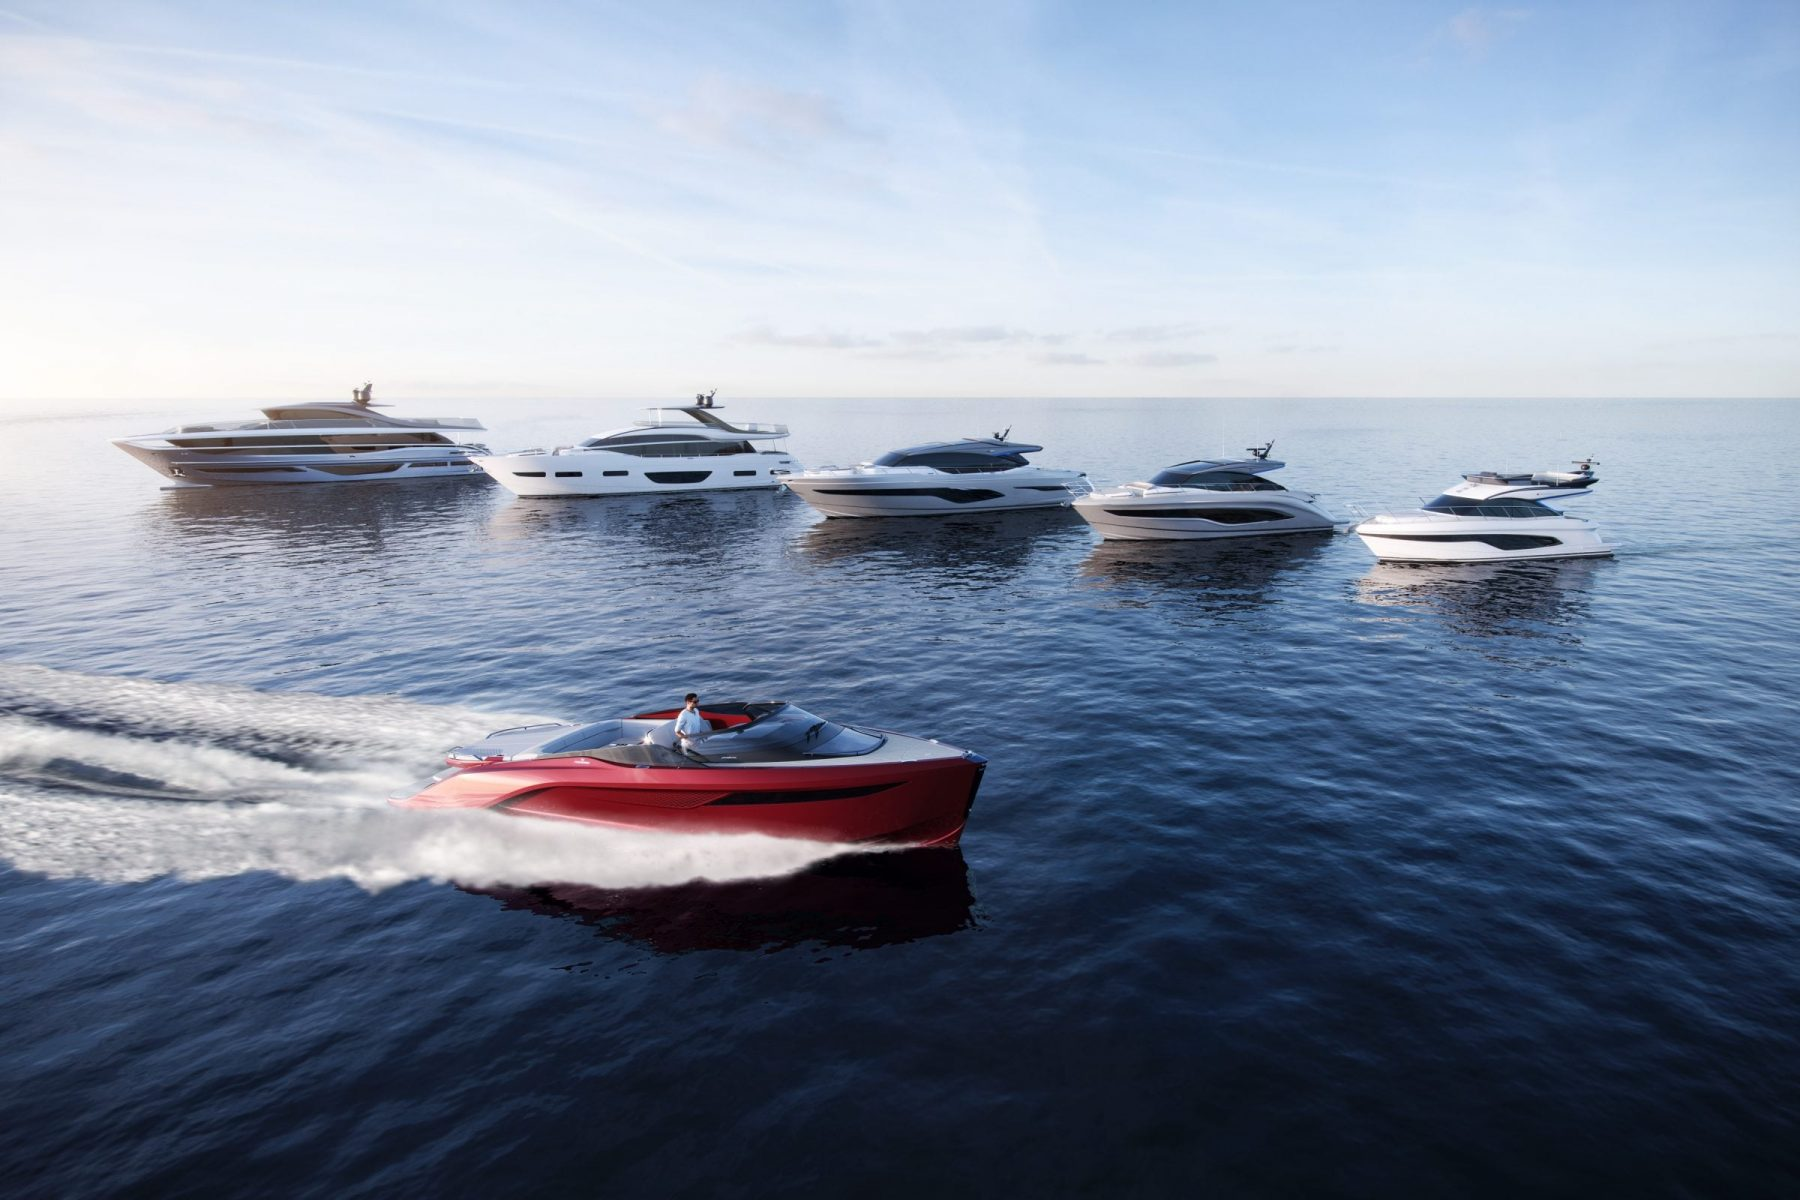 Princess motor yacht sales - six new models